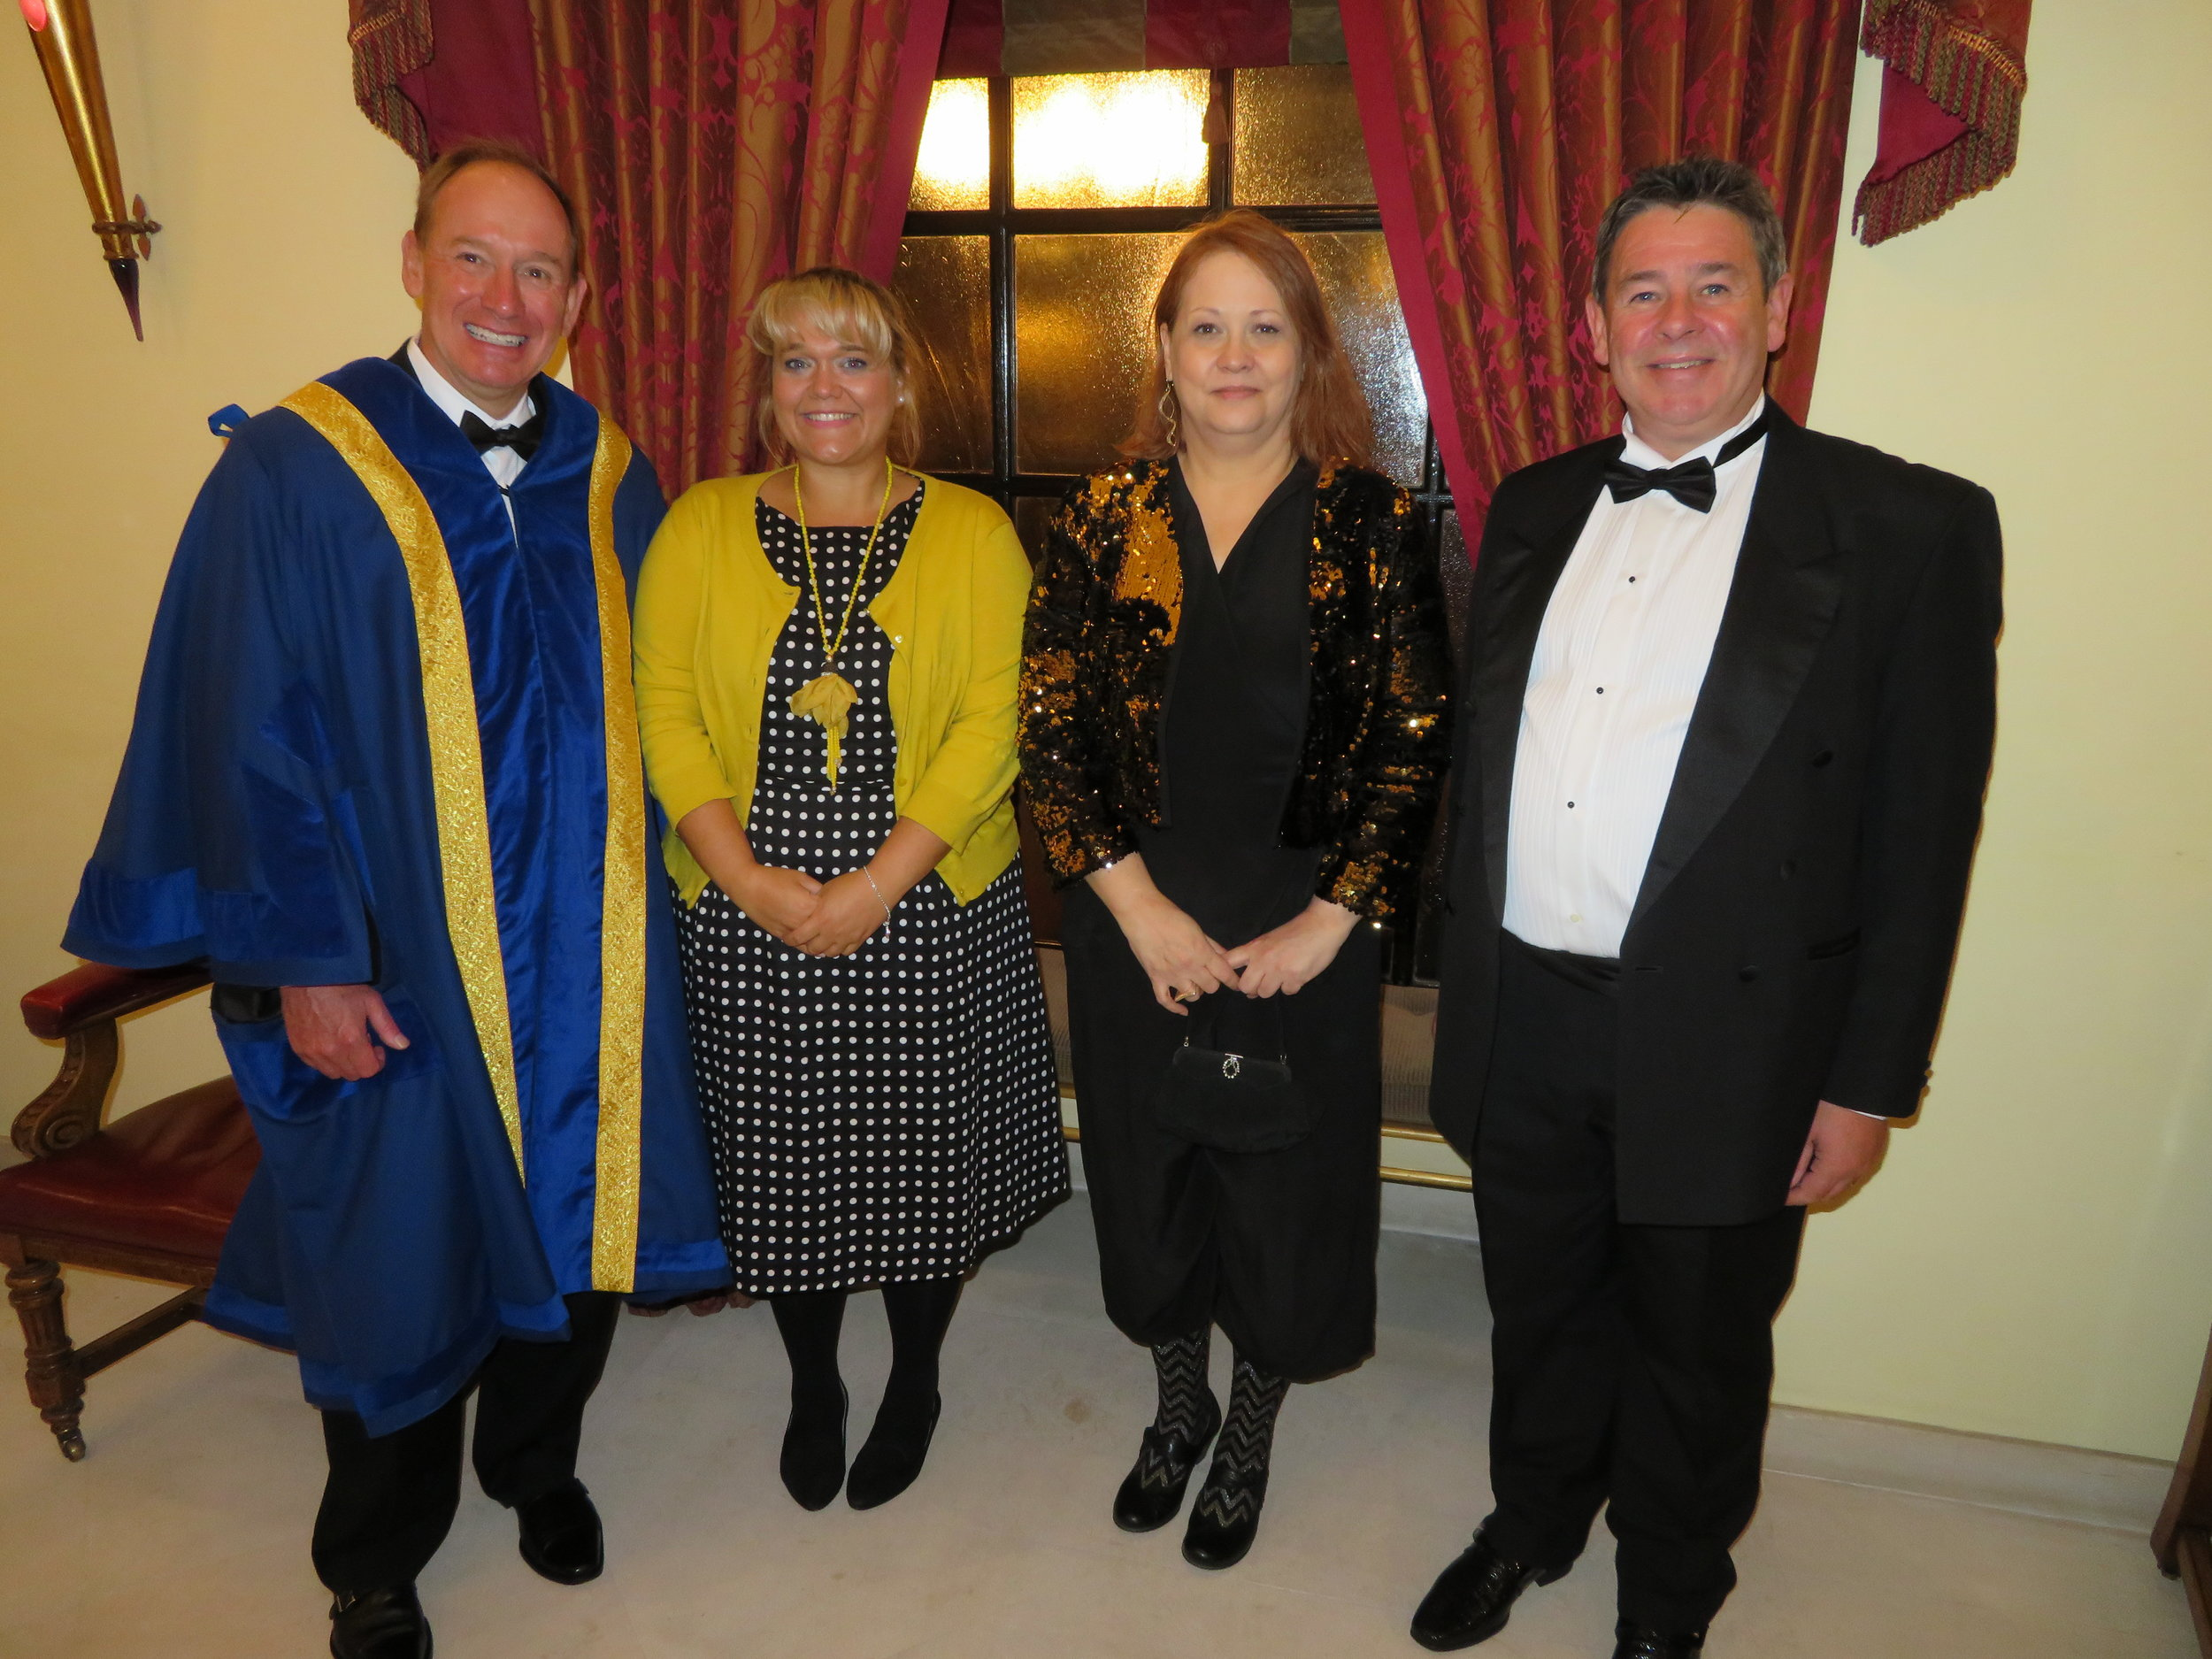 Liveryman Todd Evans, Freeman Angharad Sparkes, Trade Freeman Teri Howes & Freeman Paul Cushen